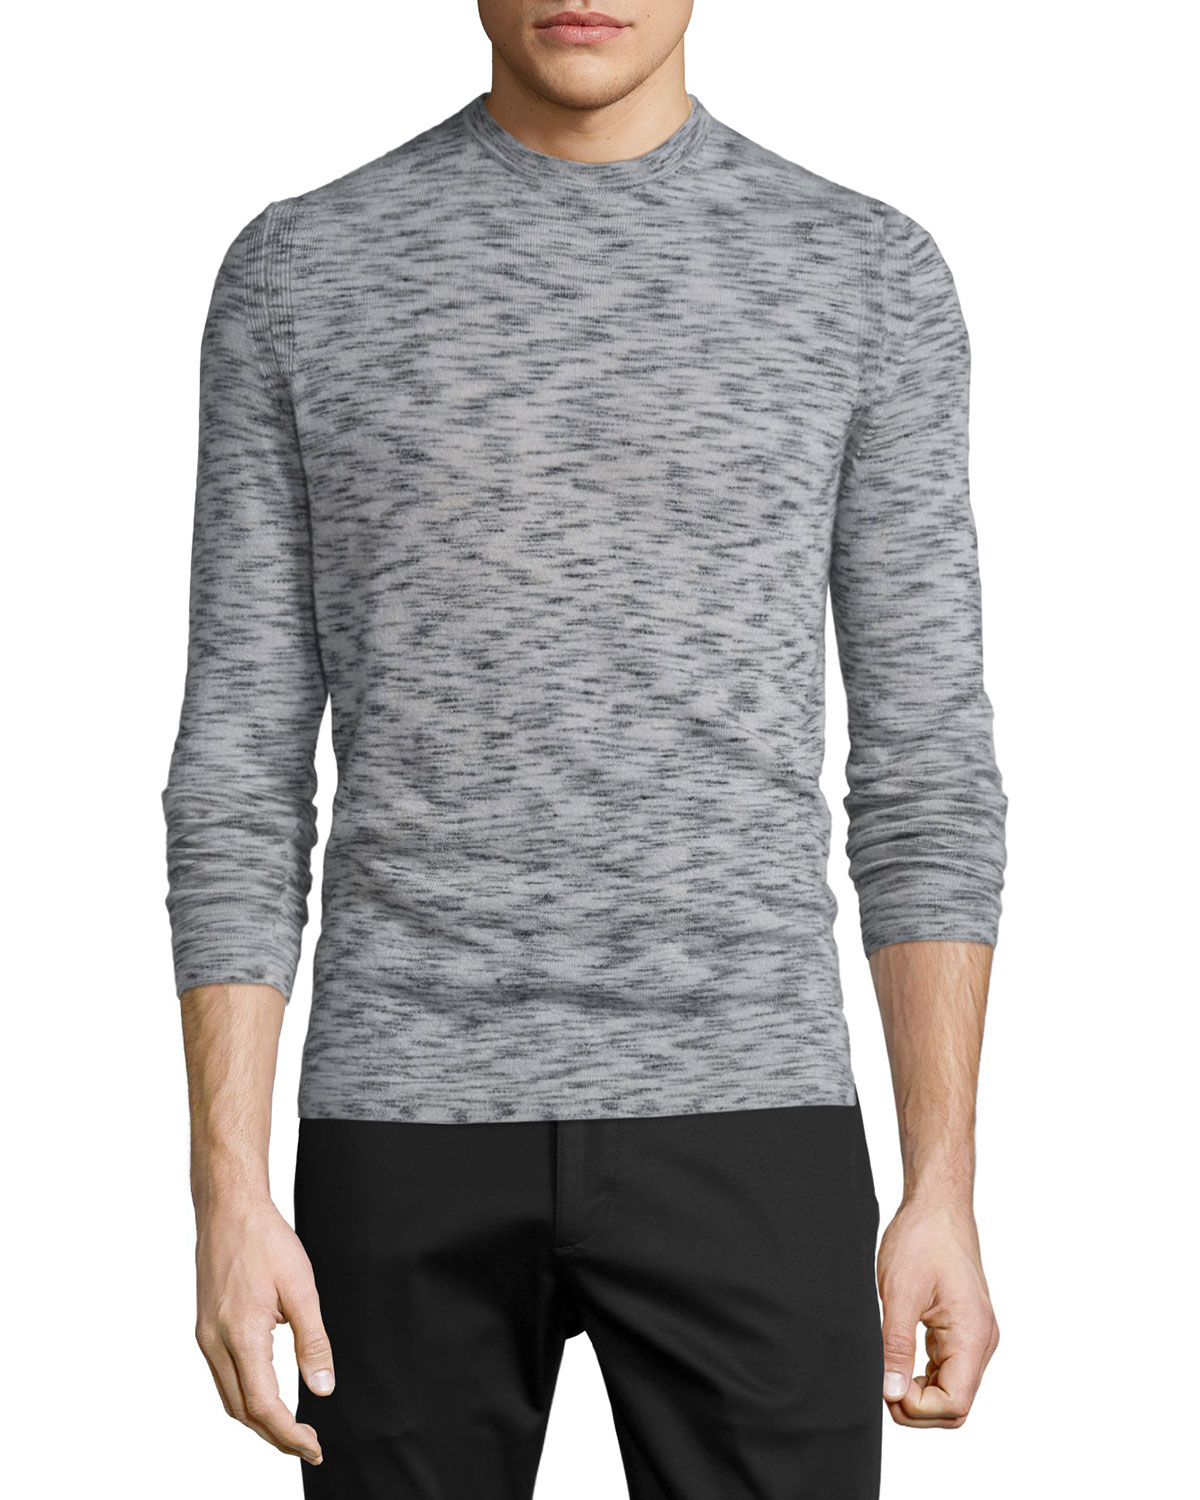 Vetel Space-Dyed Cashmere Sweater, Charcoal